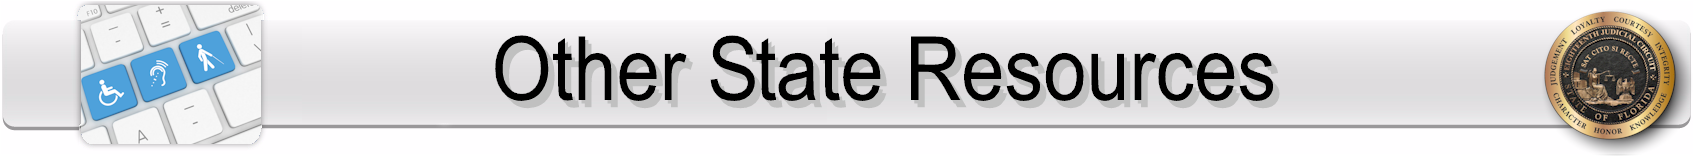 State Resources Banner